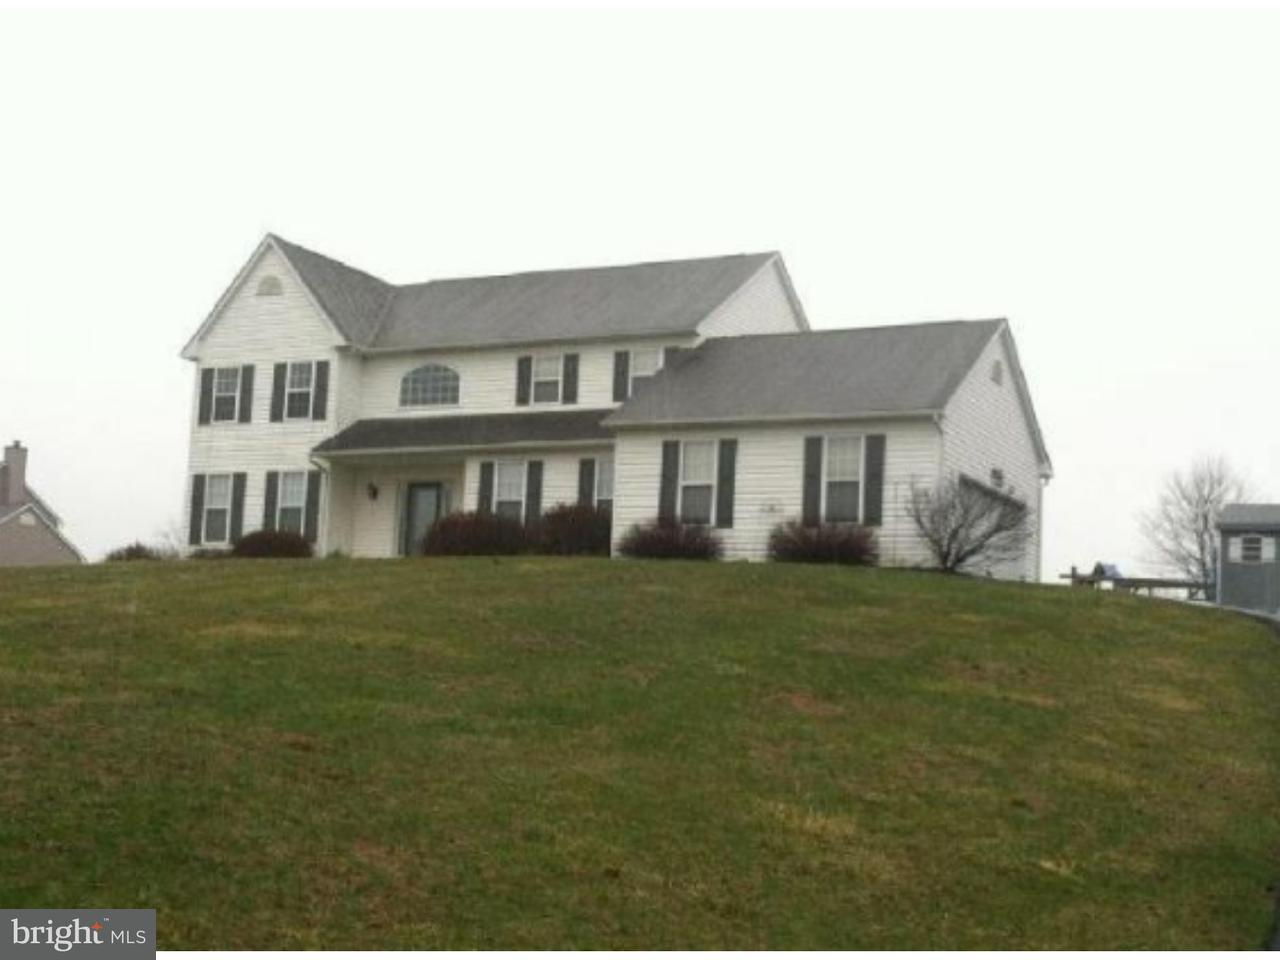 Single Family Home for Rent at 137 FREESE Road Oxford, Pennsylvania 19363 United States